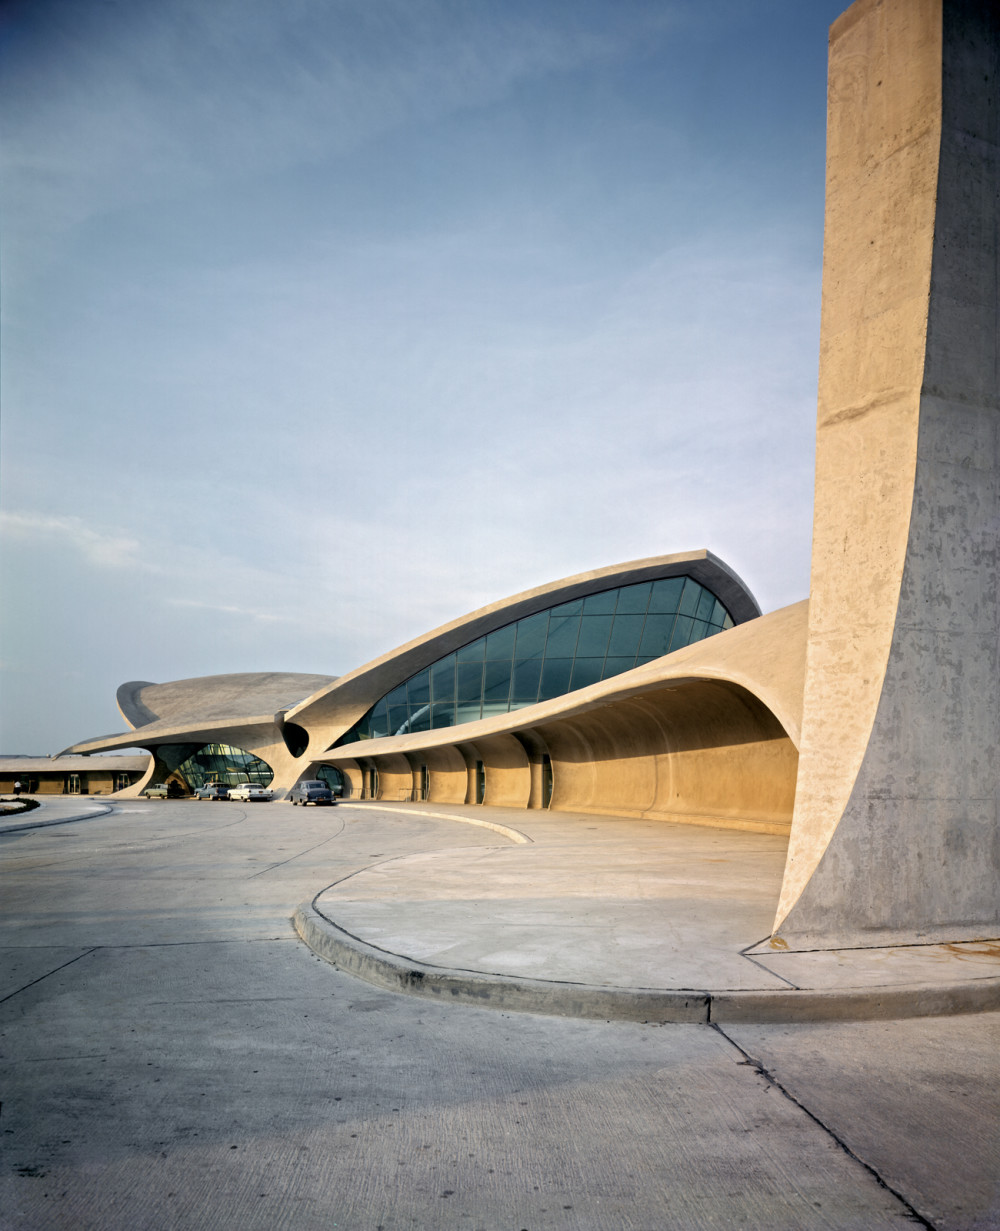 twa-terminal-jfk-airport-new-york-exterior